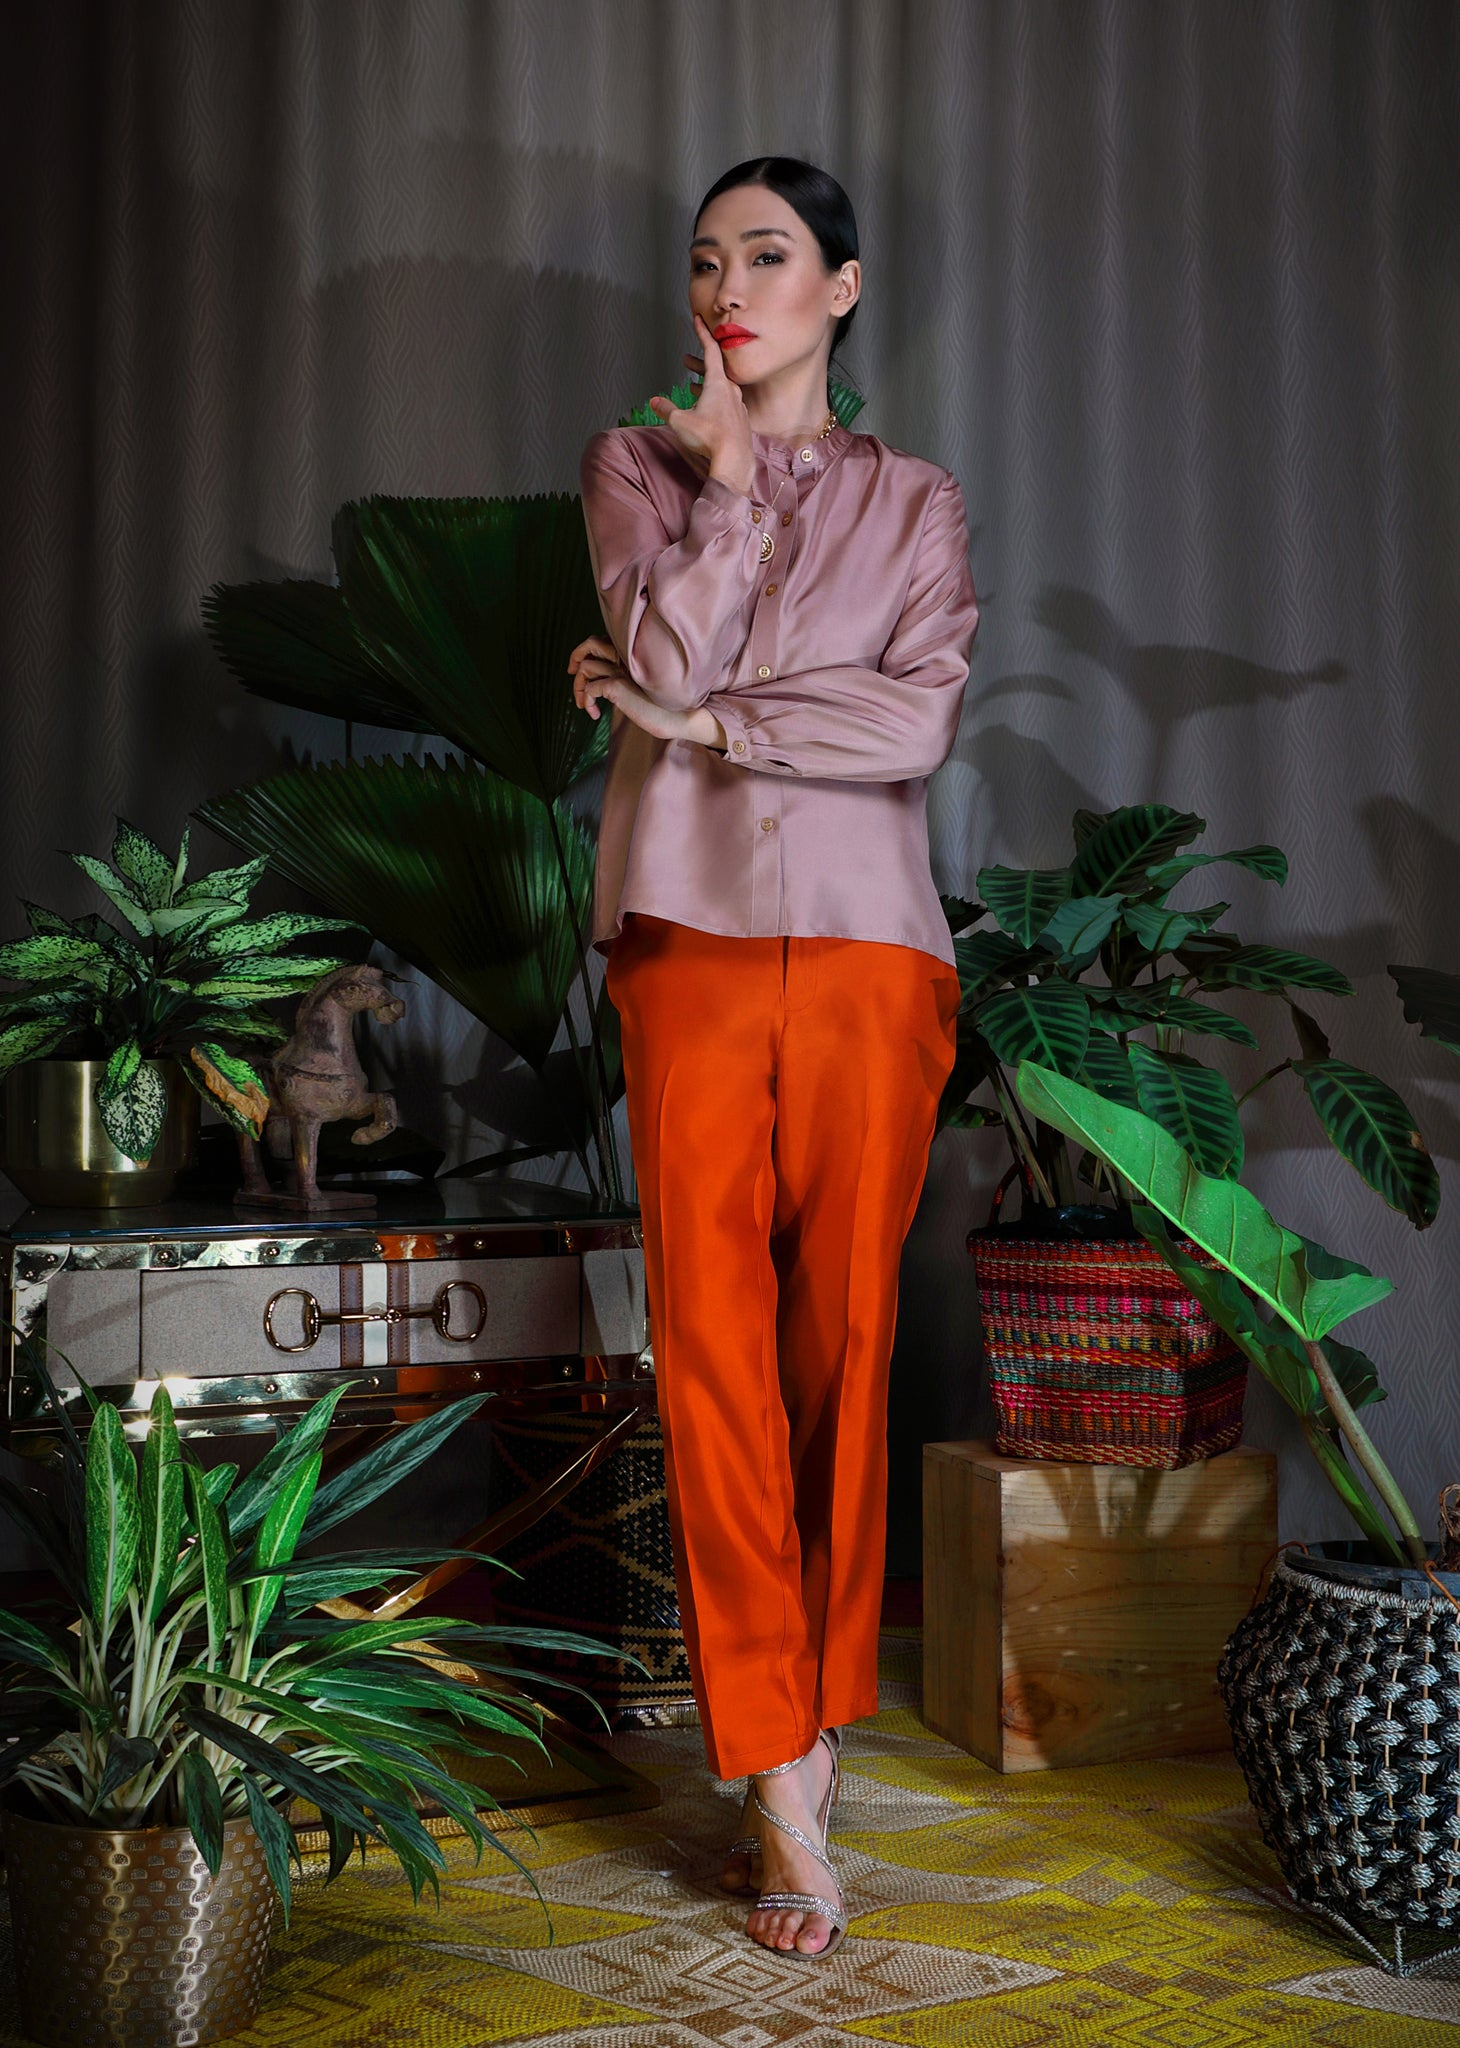 Katyusha Fiery Brown simple pants and cocoa blouse